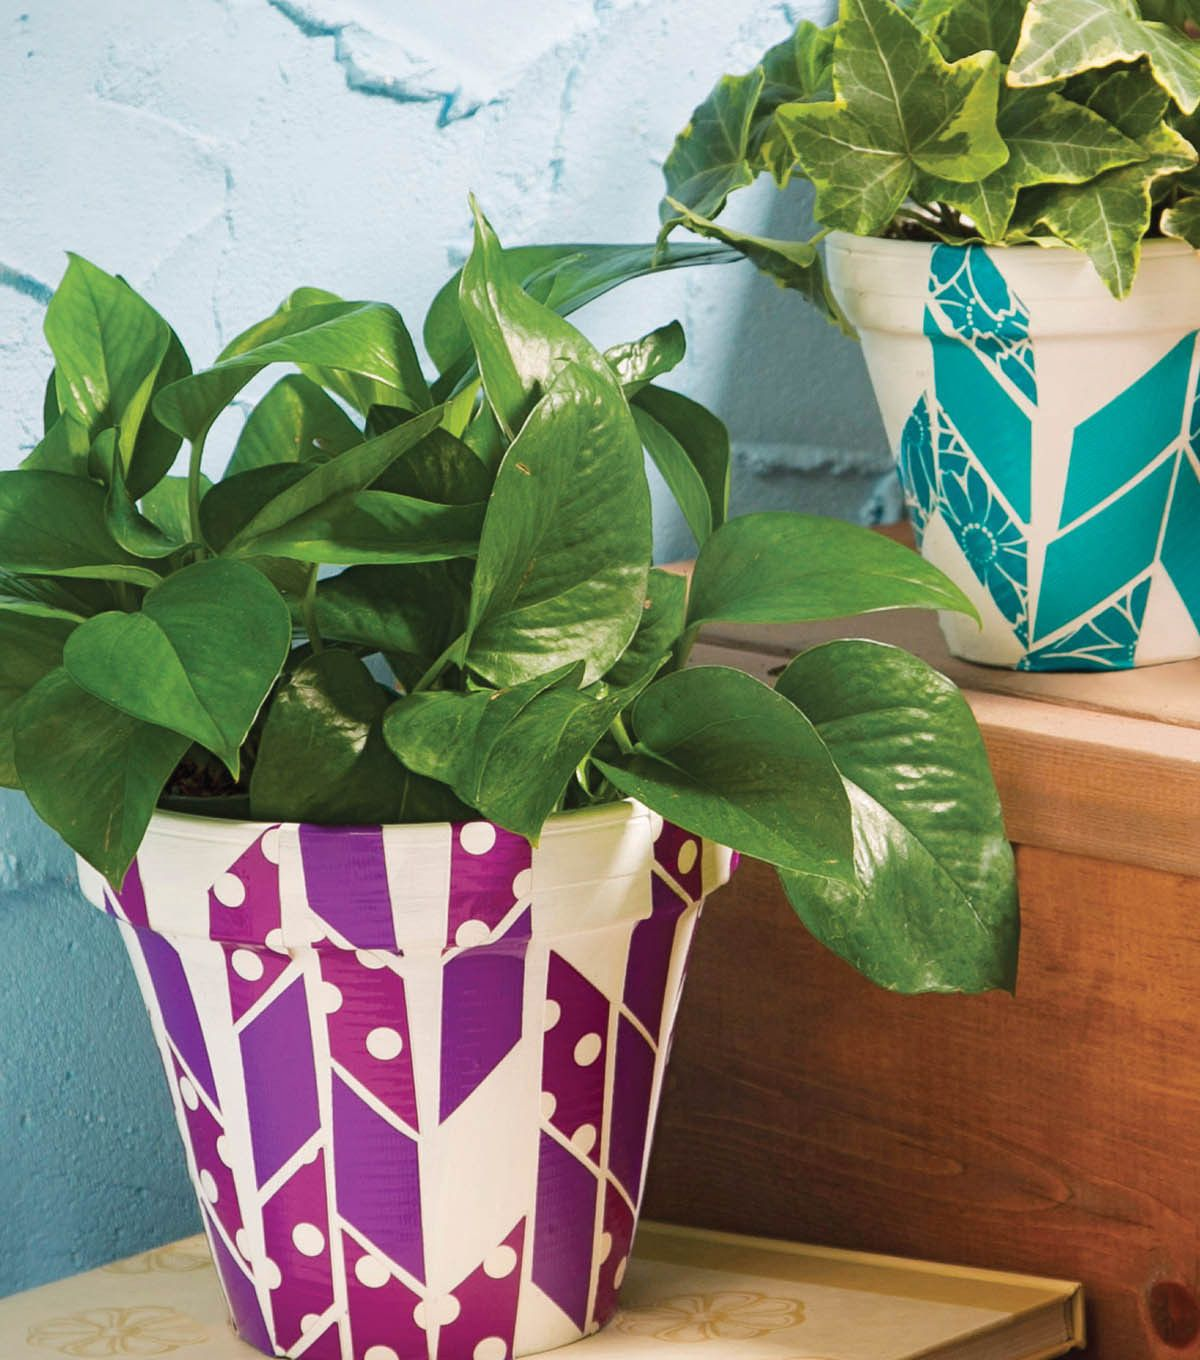 24 Indoor Herb Garden Ideas To Look For Inspiration: What A Great Idea To Liven Up Flower Pots With Decorative